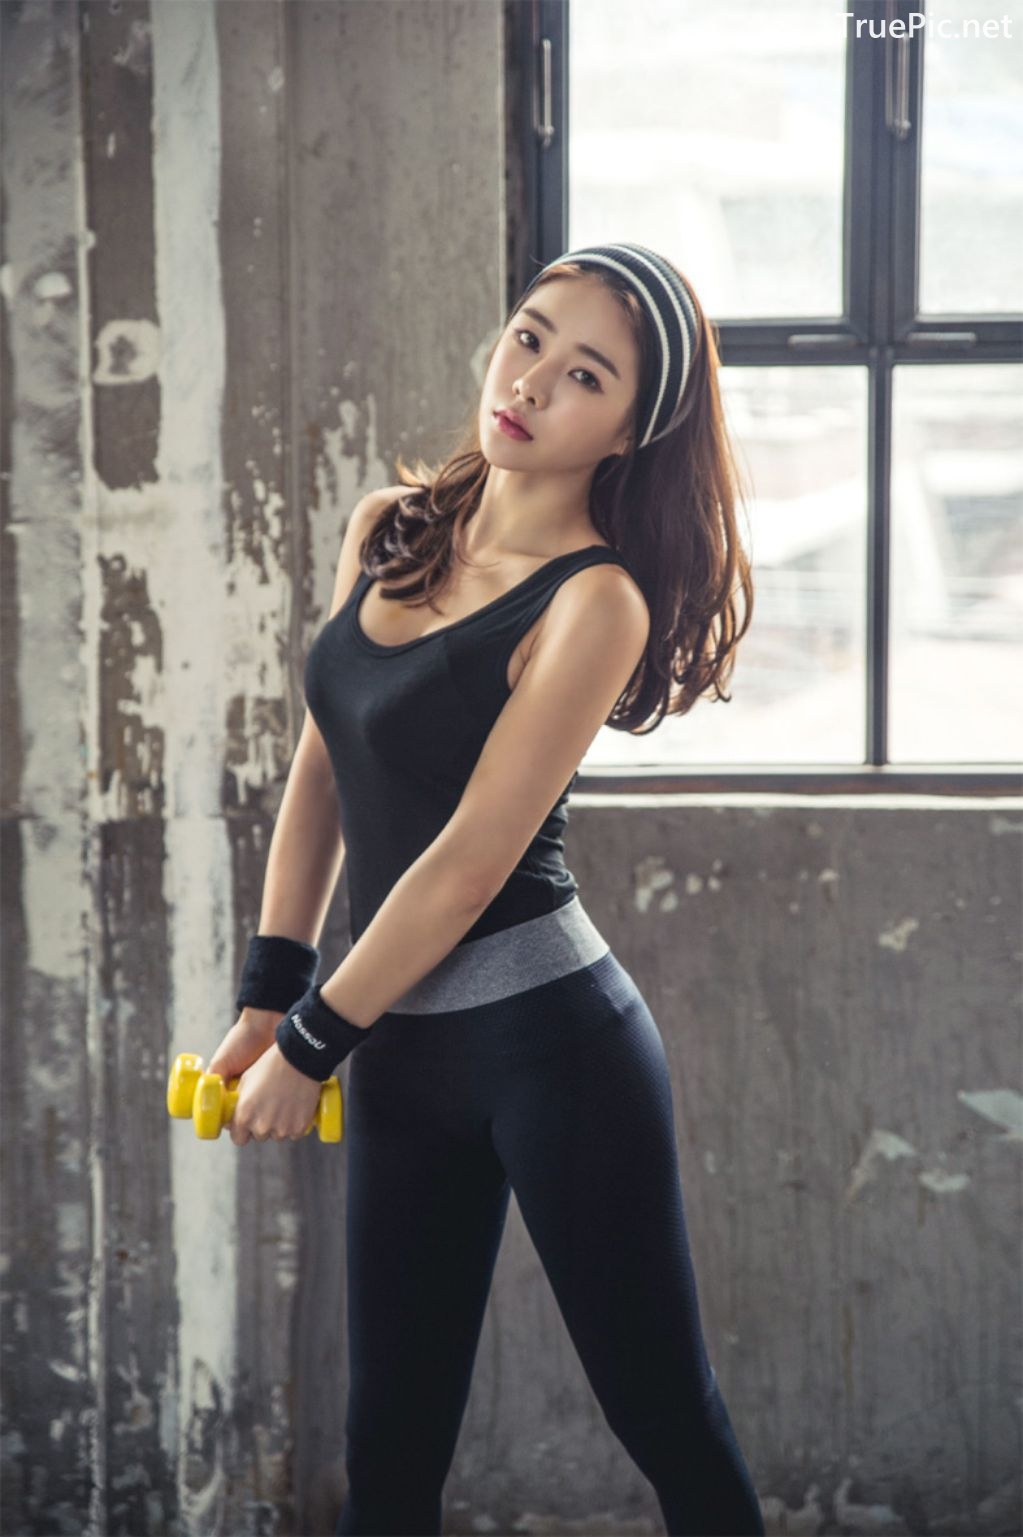 Image Korean Beautiful Model - An Seo Rin - Fitness Fashion Photography - TruePic.net - Picture-1